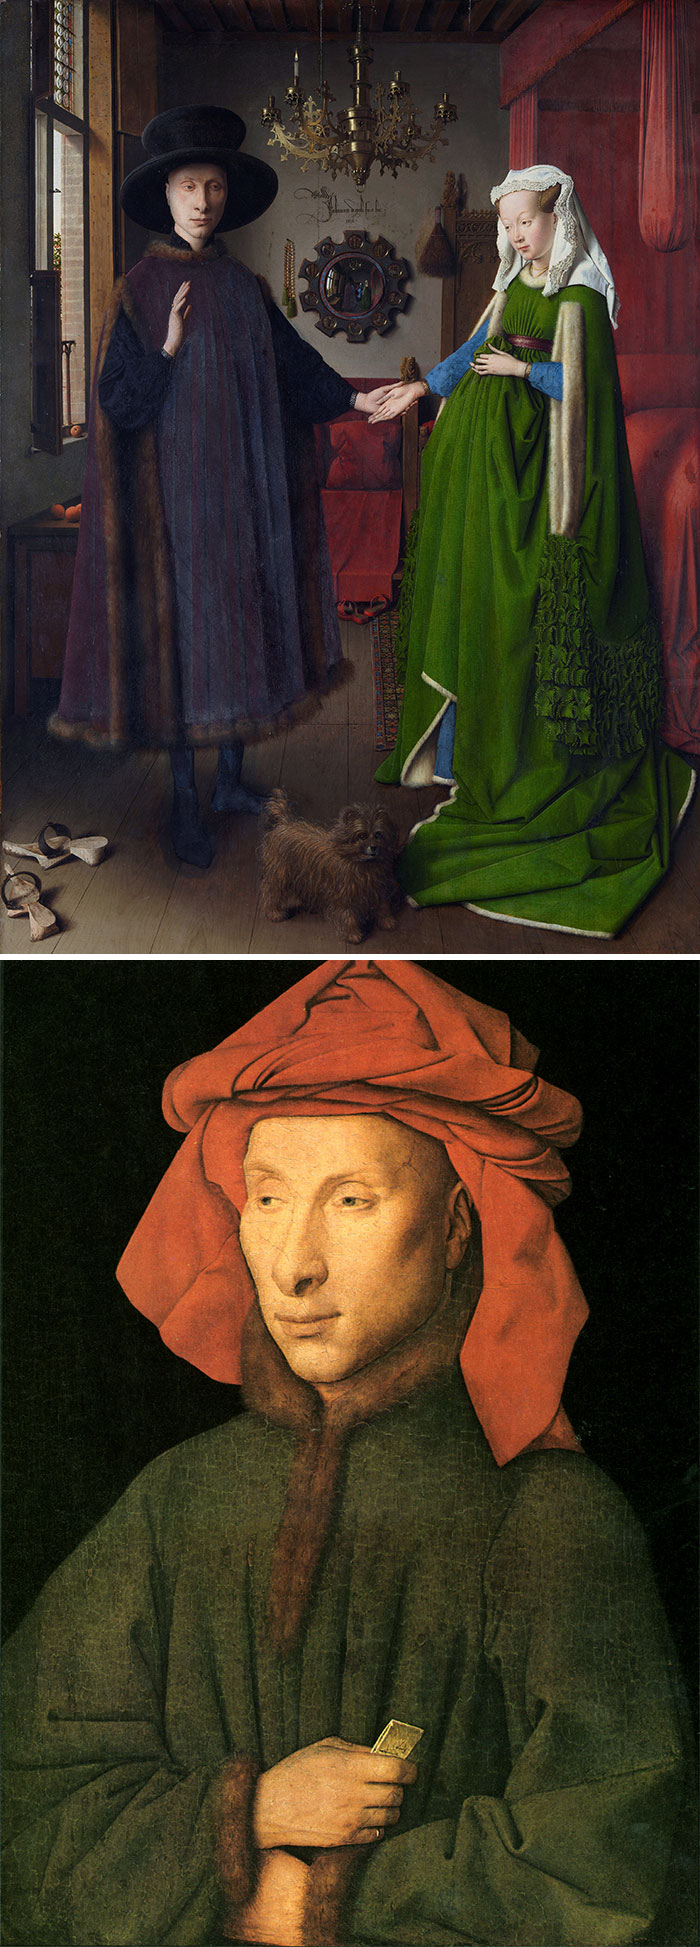 If Everyone – Including The Women – Looks Like Putin, Then It's Van Eyck